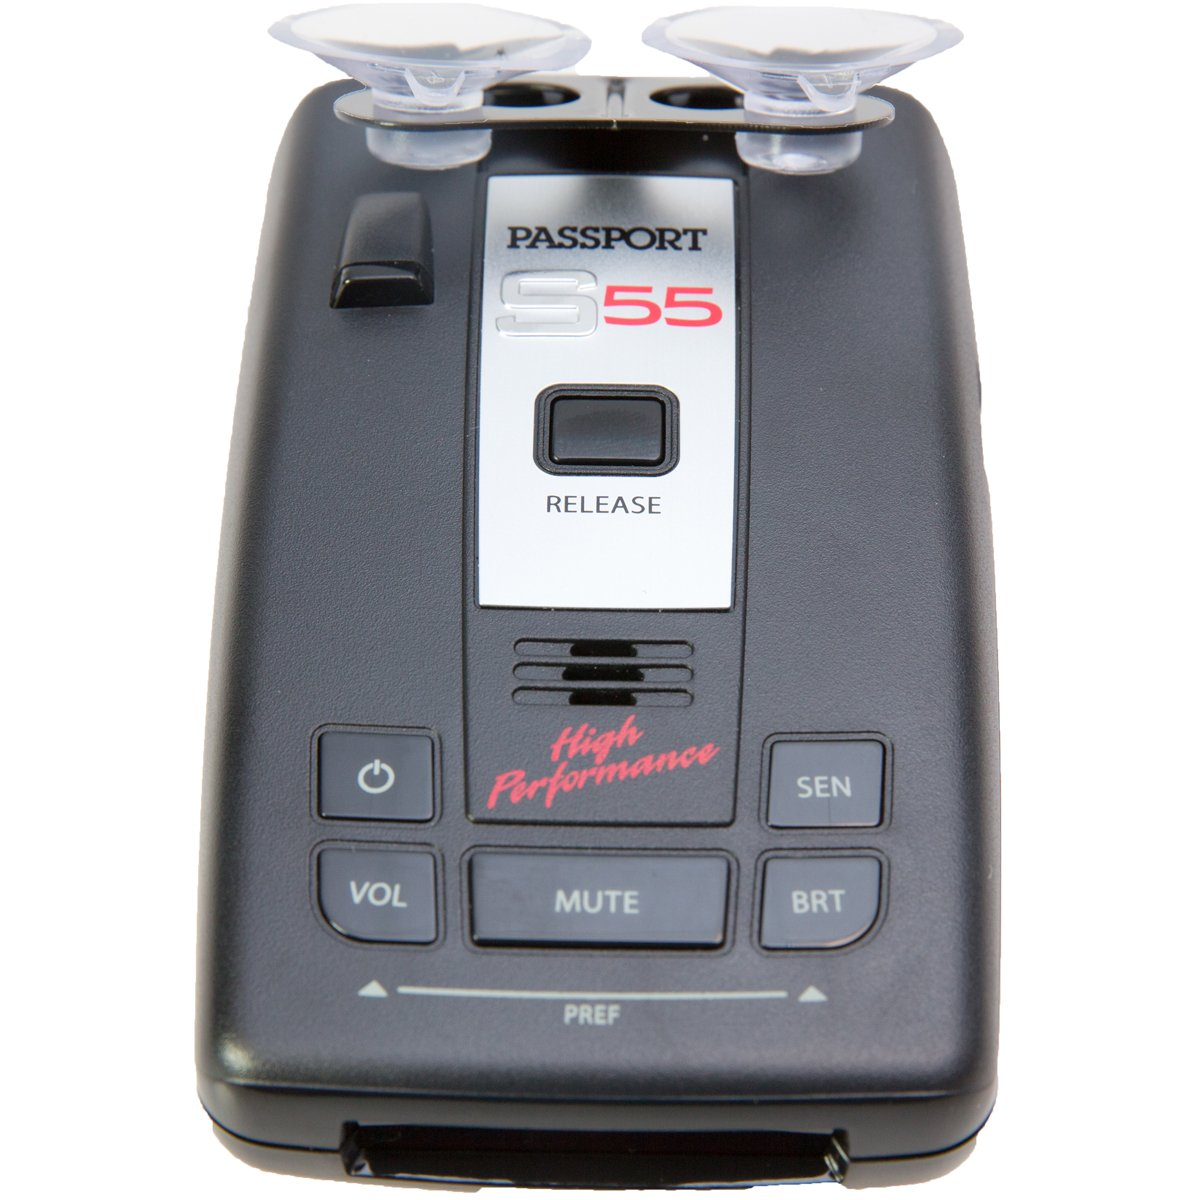 Escort Passport S55 High Performance Pro Radar and Laser Detector with DSP (High-Intensity Red Display) by Escort (Image #4)